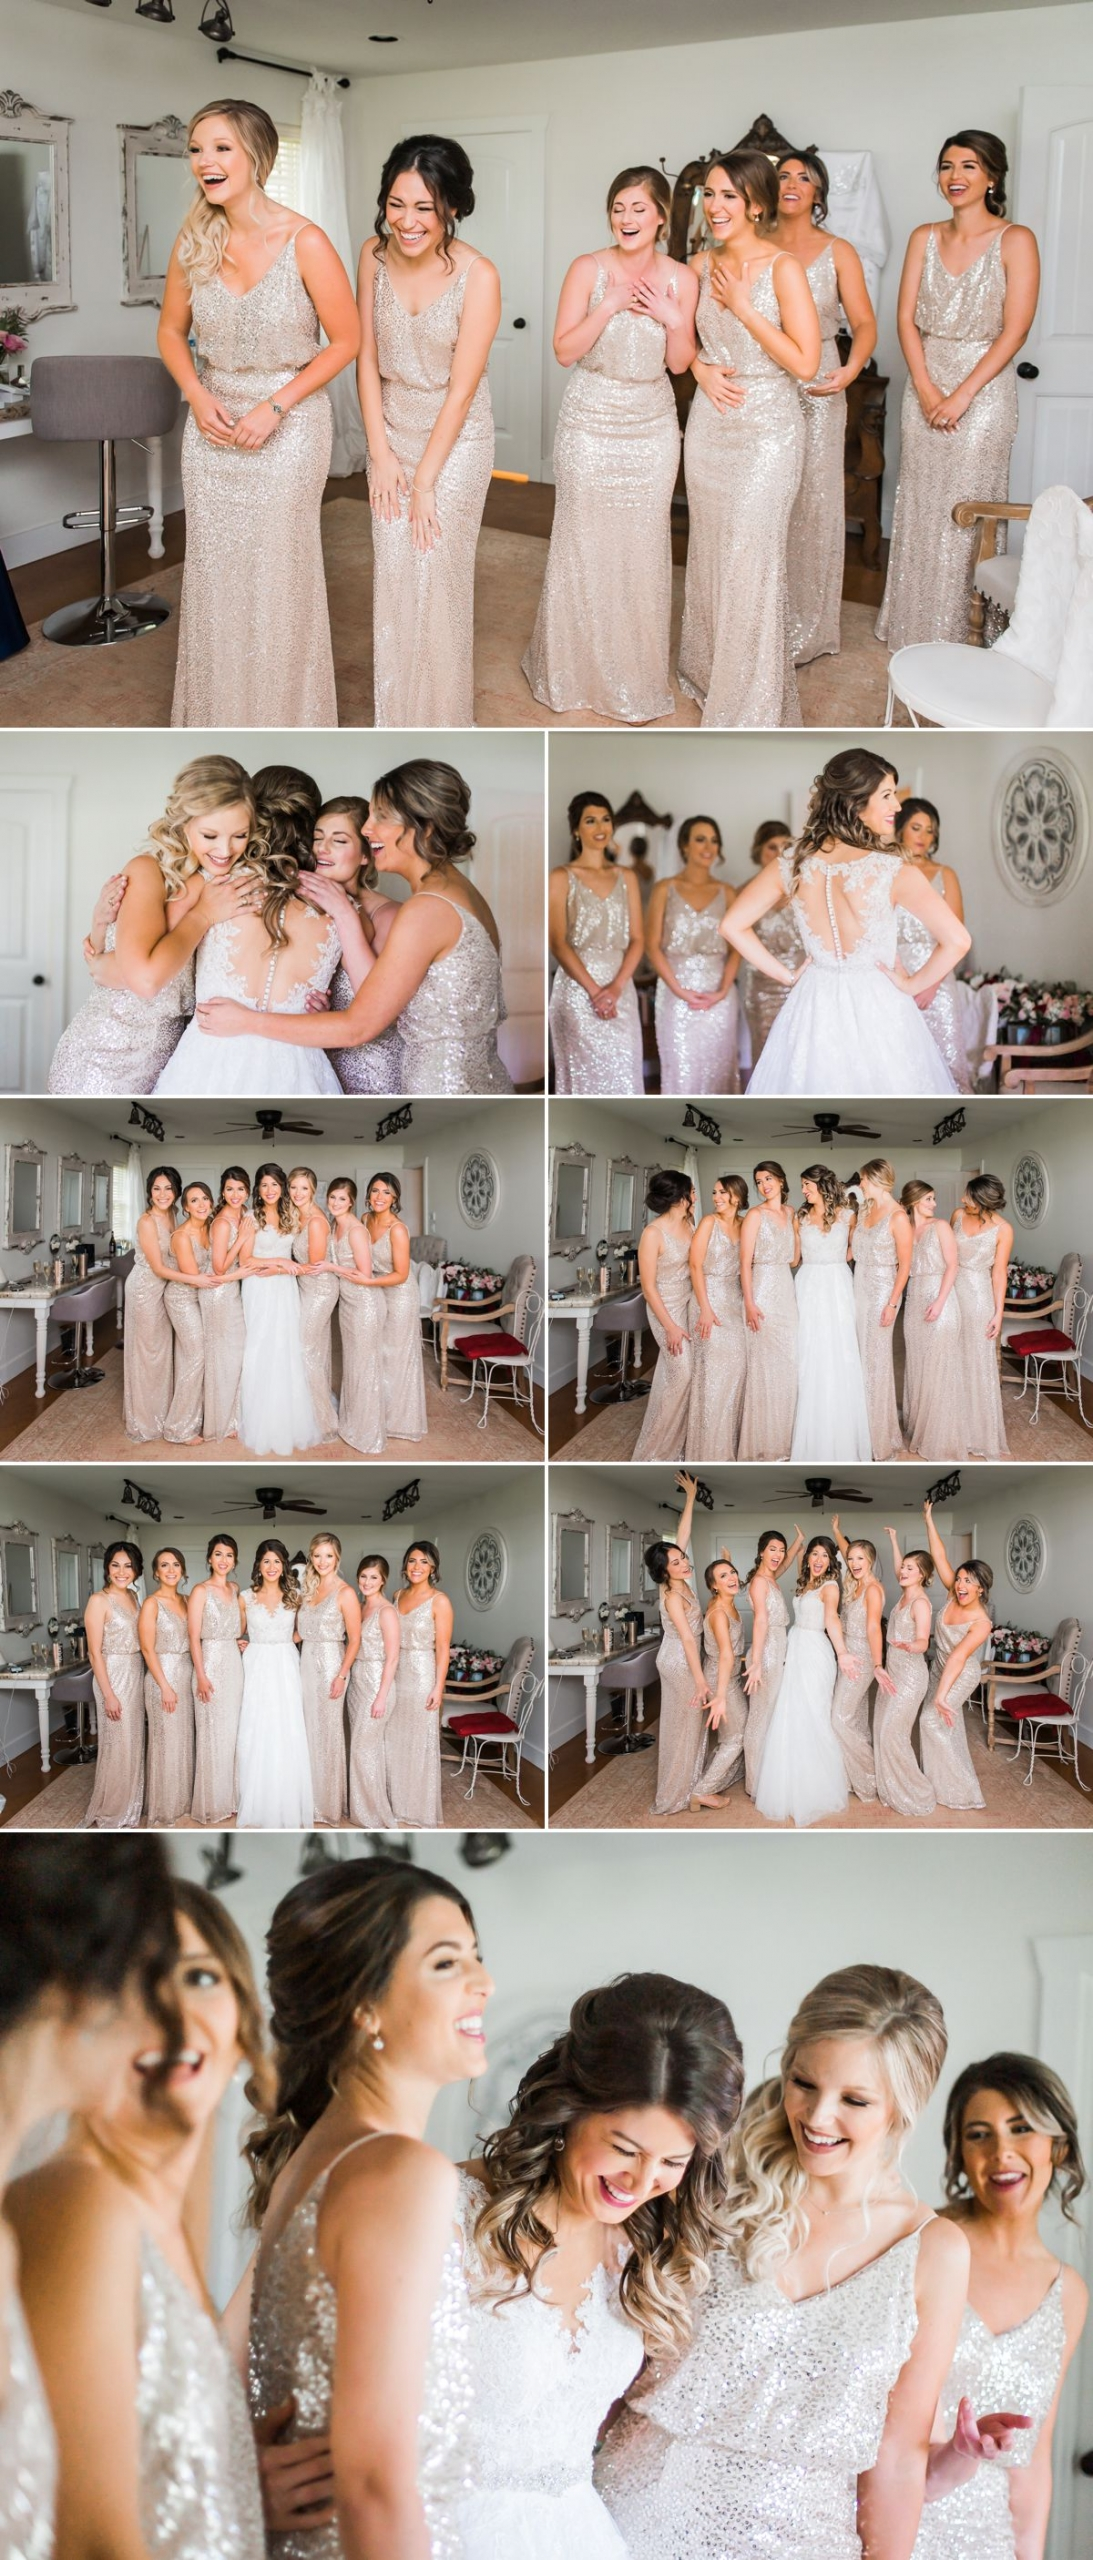 Balmorhea Wedding Dress reveal with Bridesmaids